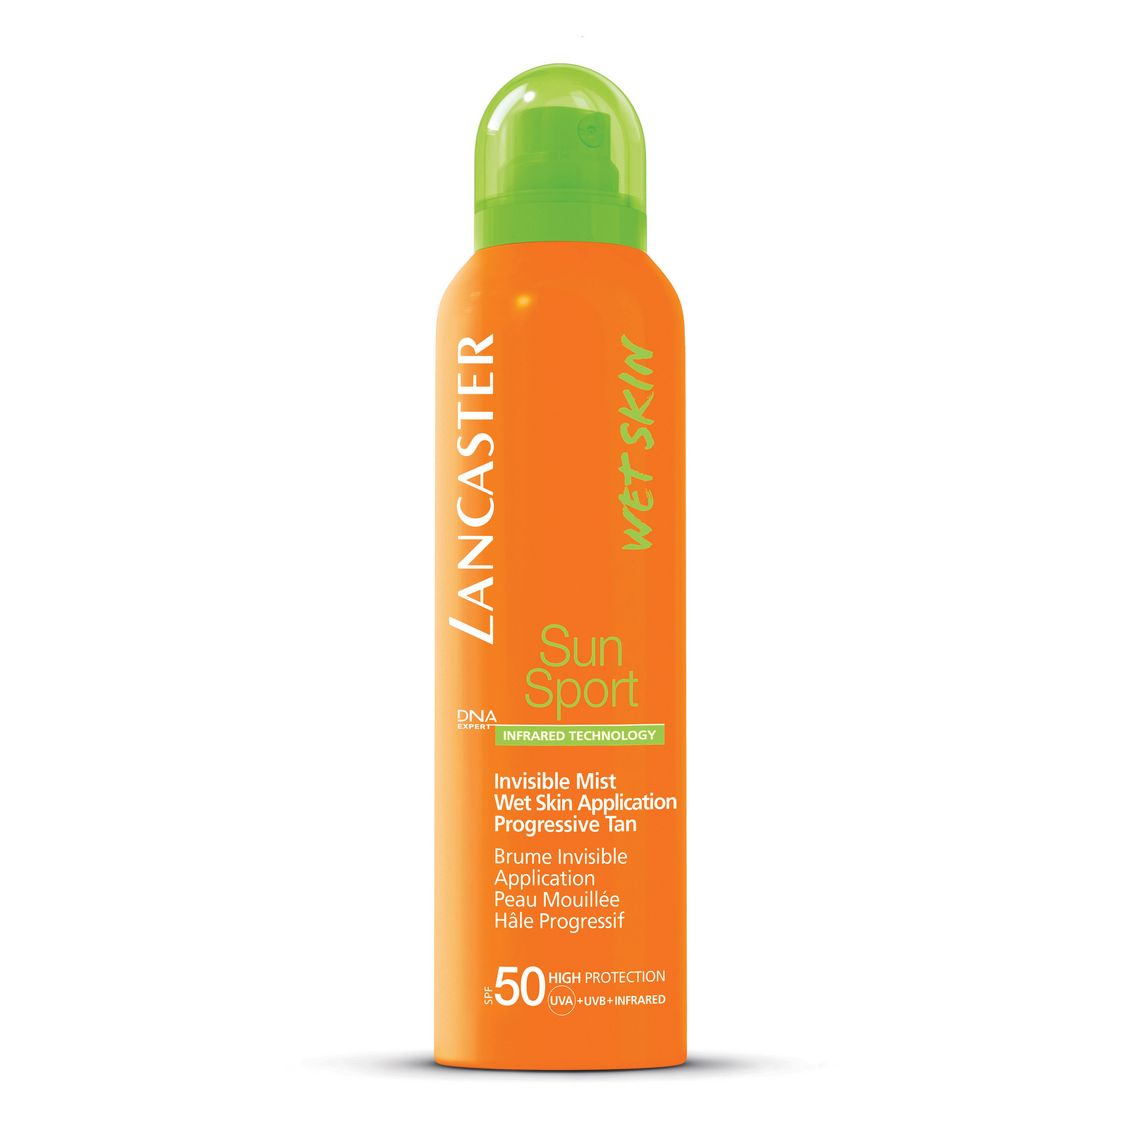 Sun Sport Invisible Mist Wet Skin Application Progressive Tan SPF 50: Lancaster